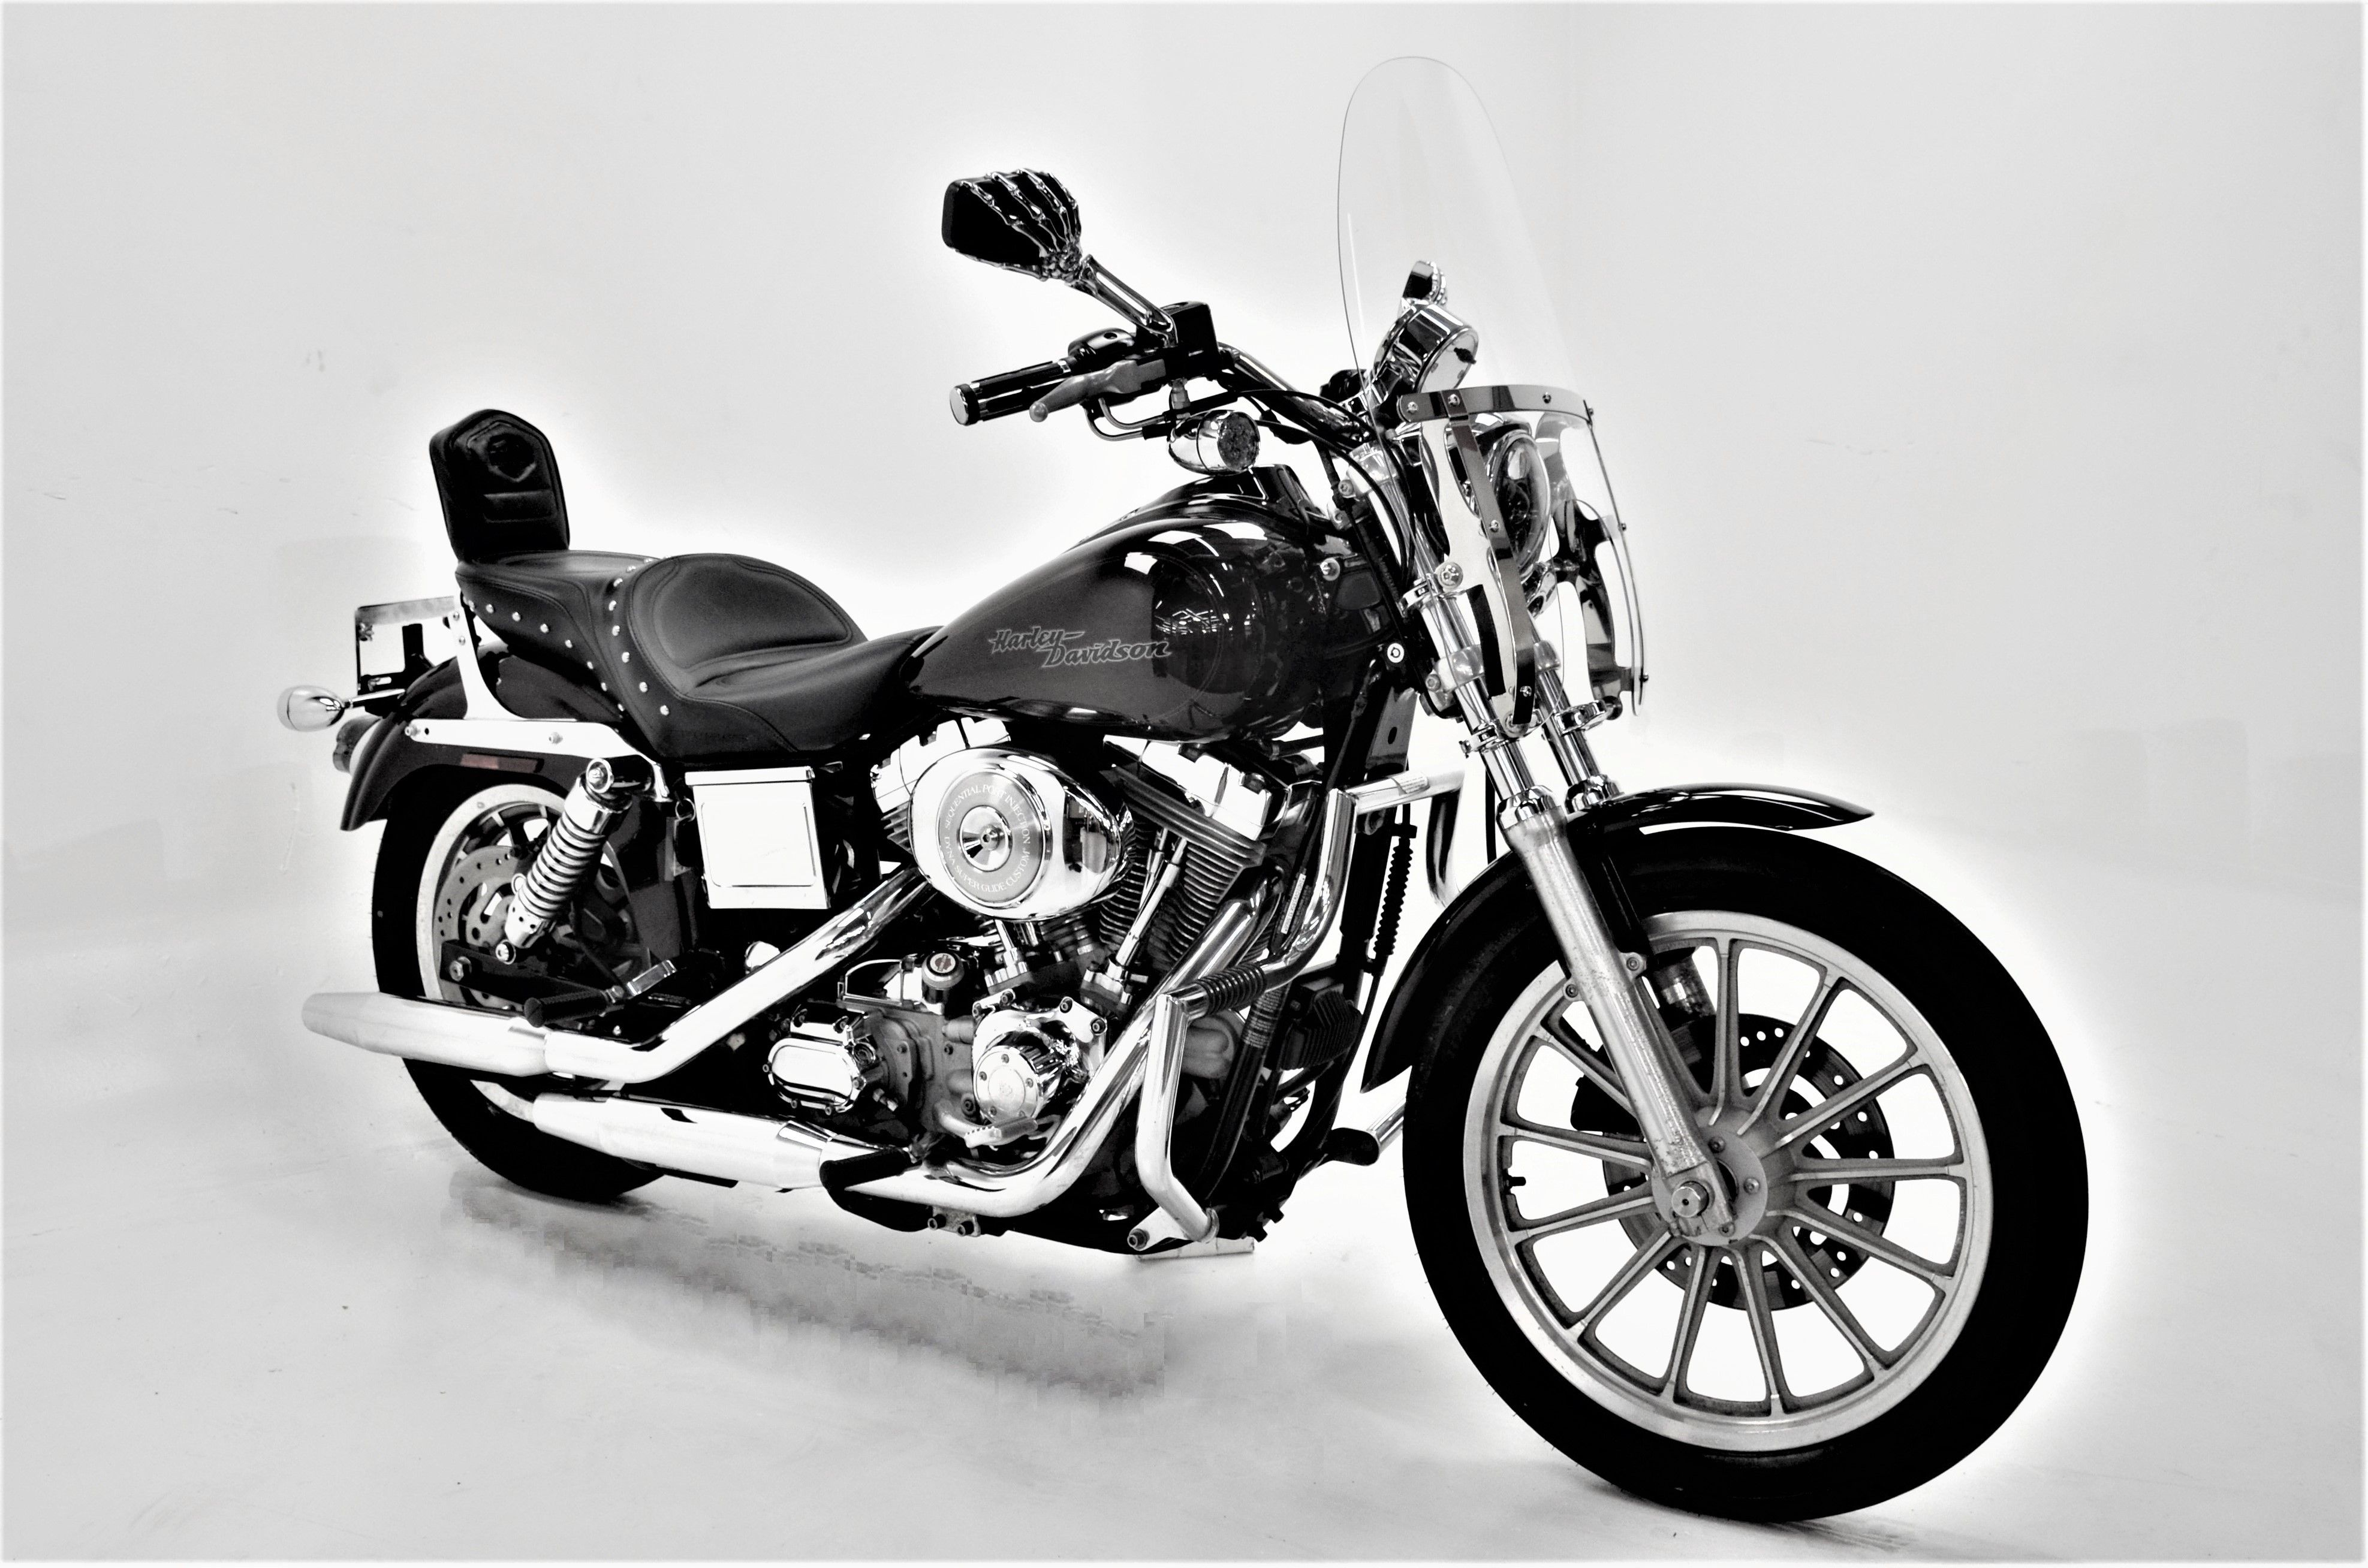 Pre-Owned 2005 Harley-Davidson Super Glide Custom